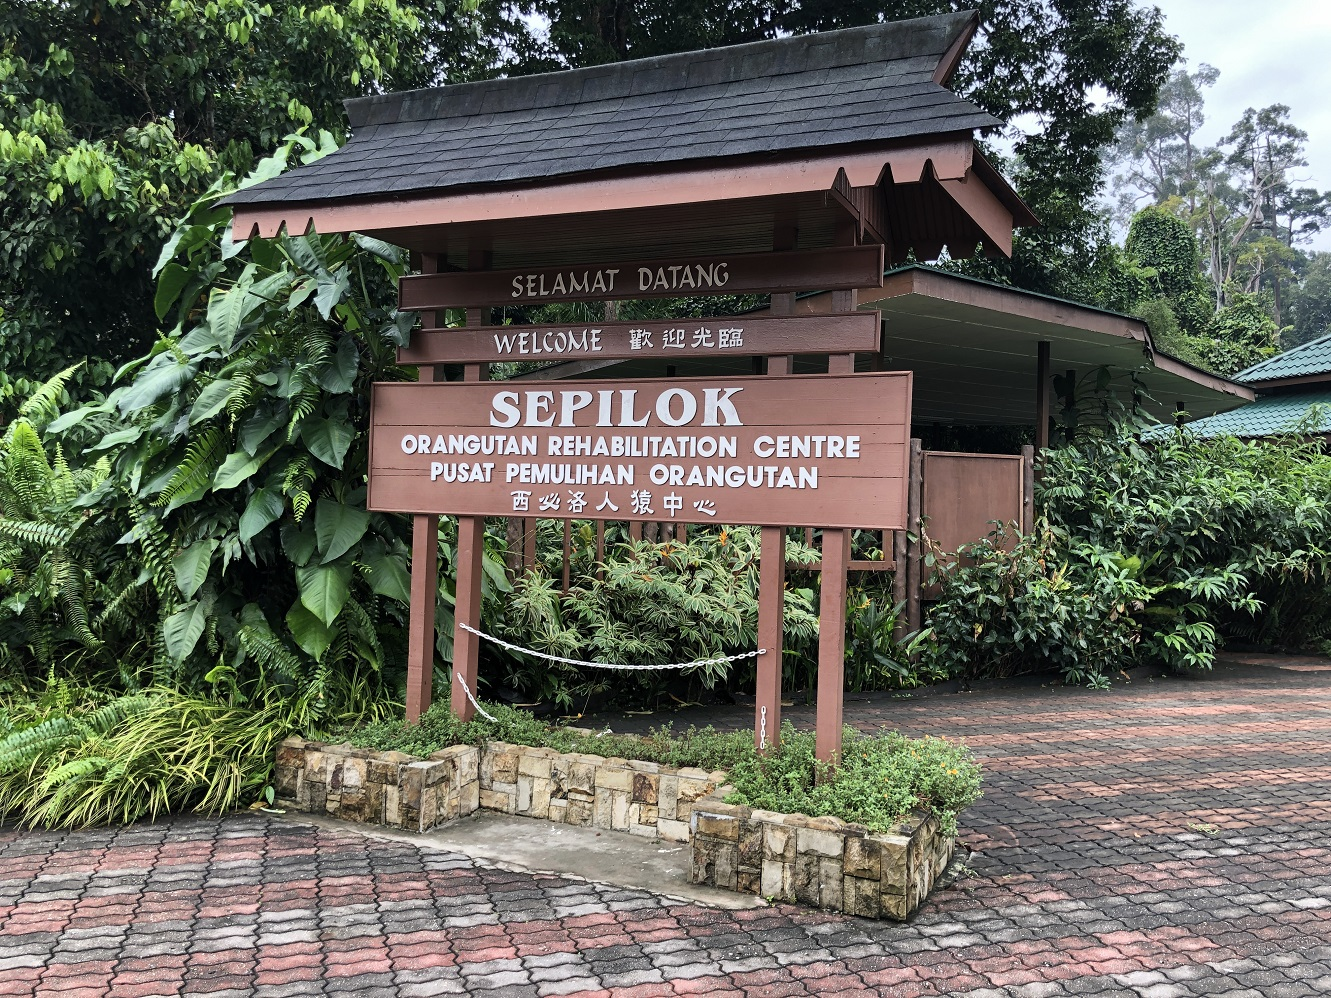 Visit the world-famous Sepilok Orangutan Rehabilitation Centre